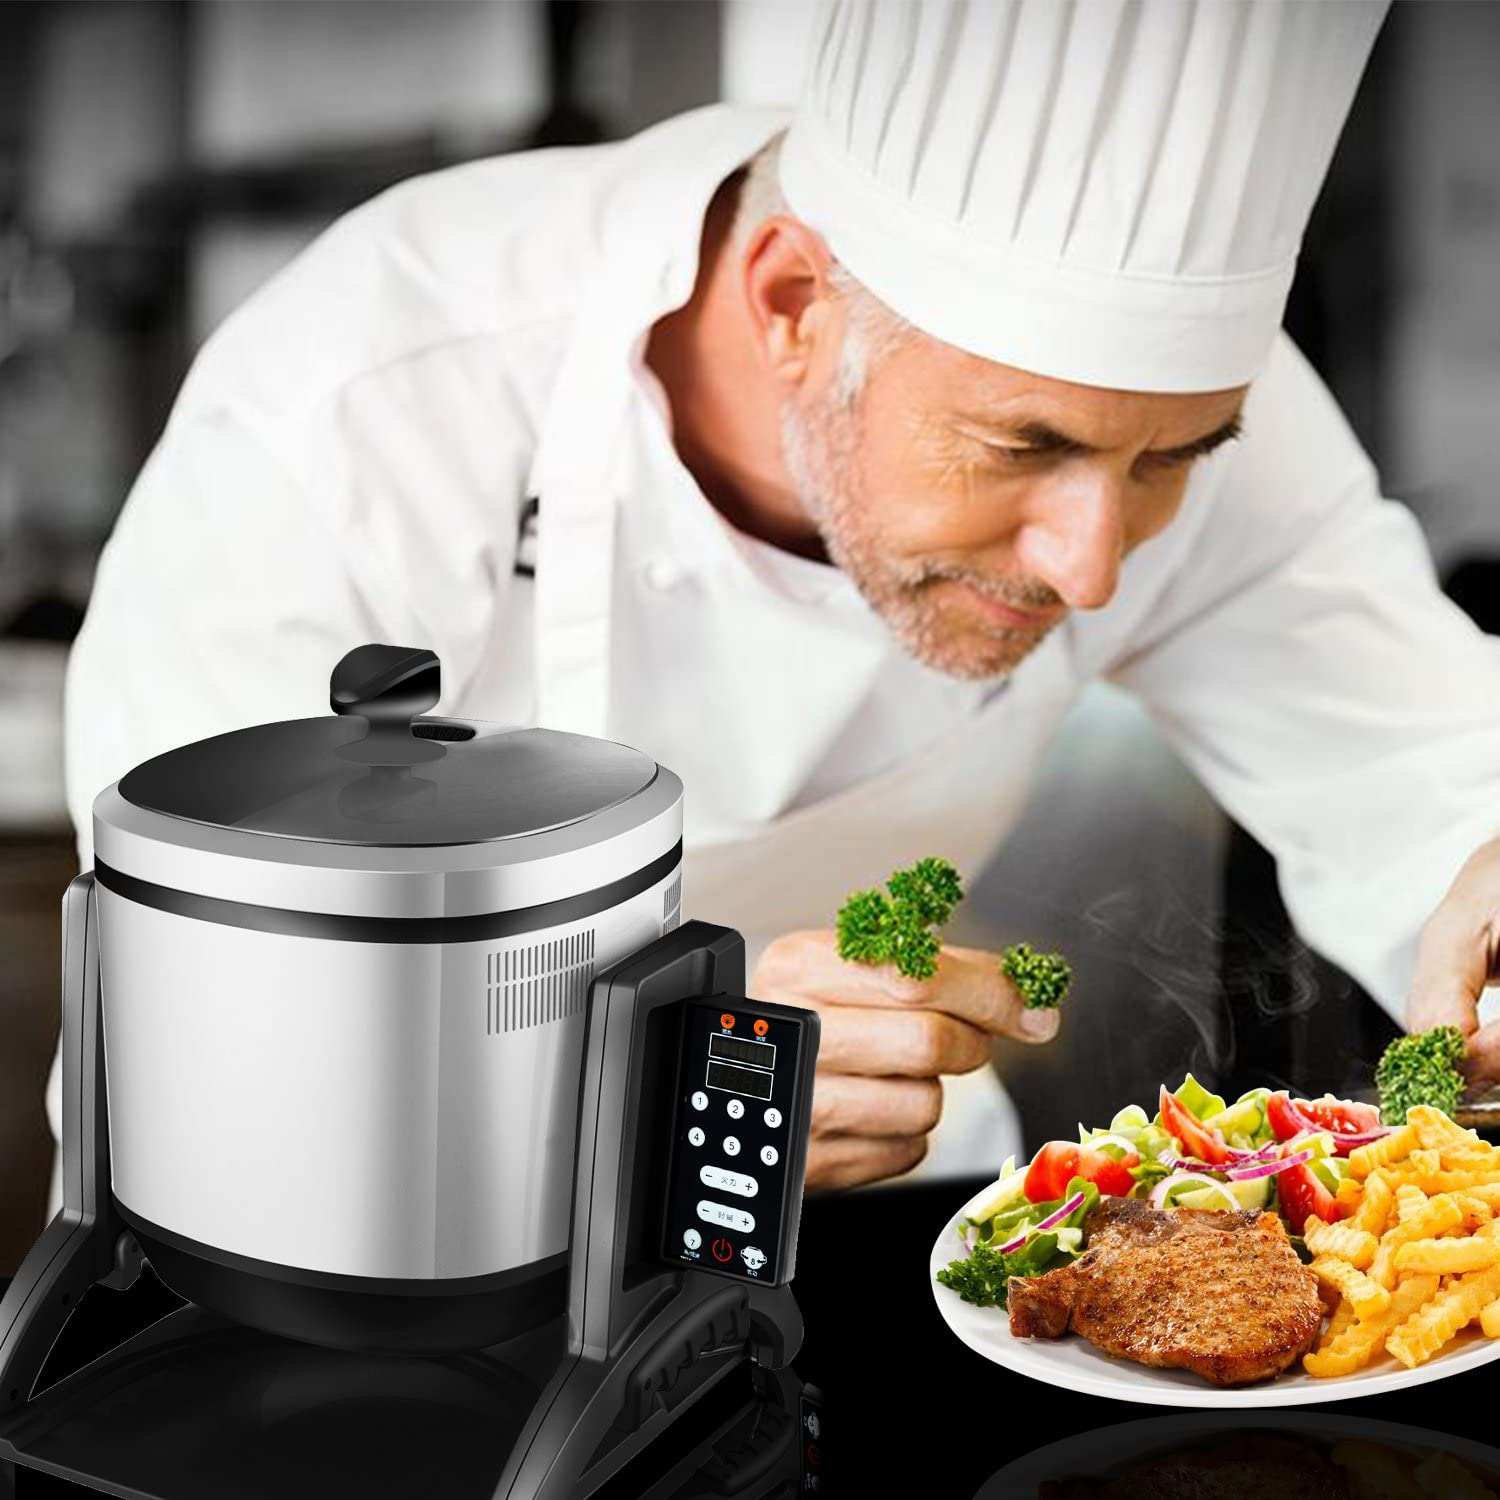 Xiaocaiyidie Commercial Intelligent Robot Cooker Automatic Cooking ...